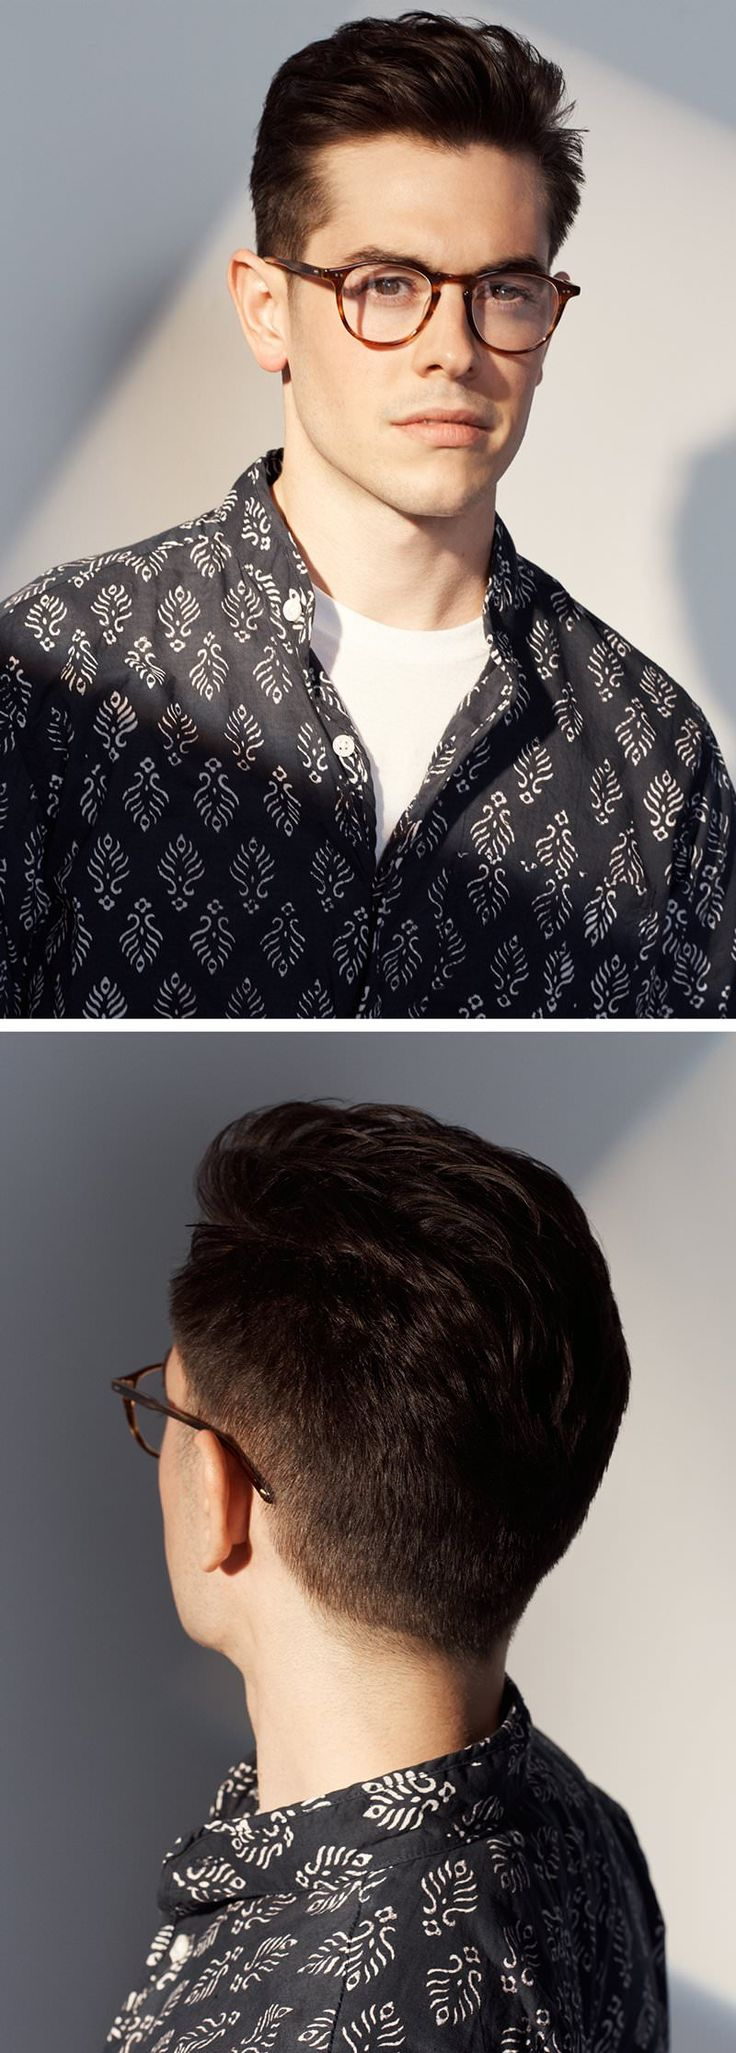 25 best hair images on pinterest hairstyles mens haircuts and 25 best hair images on pinterest hairstyles mens haircuts and urmus Choice Image